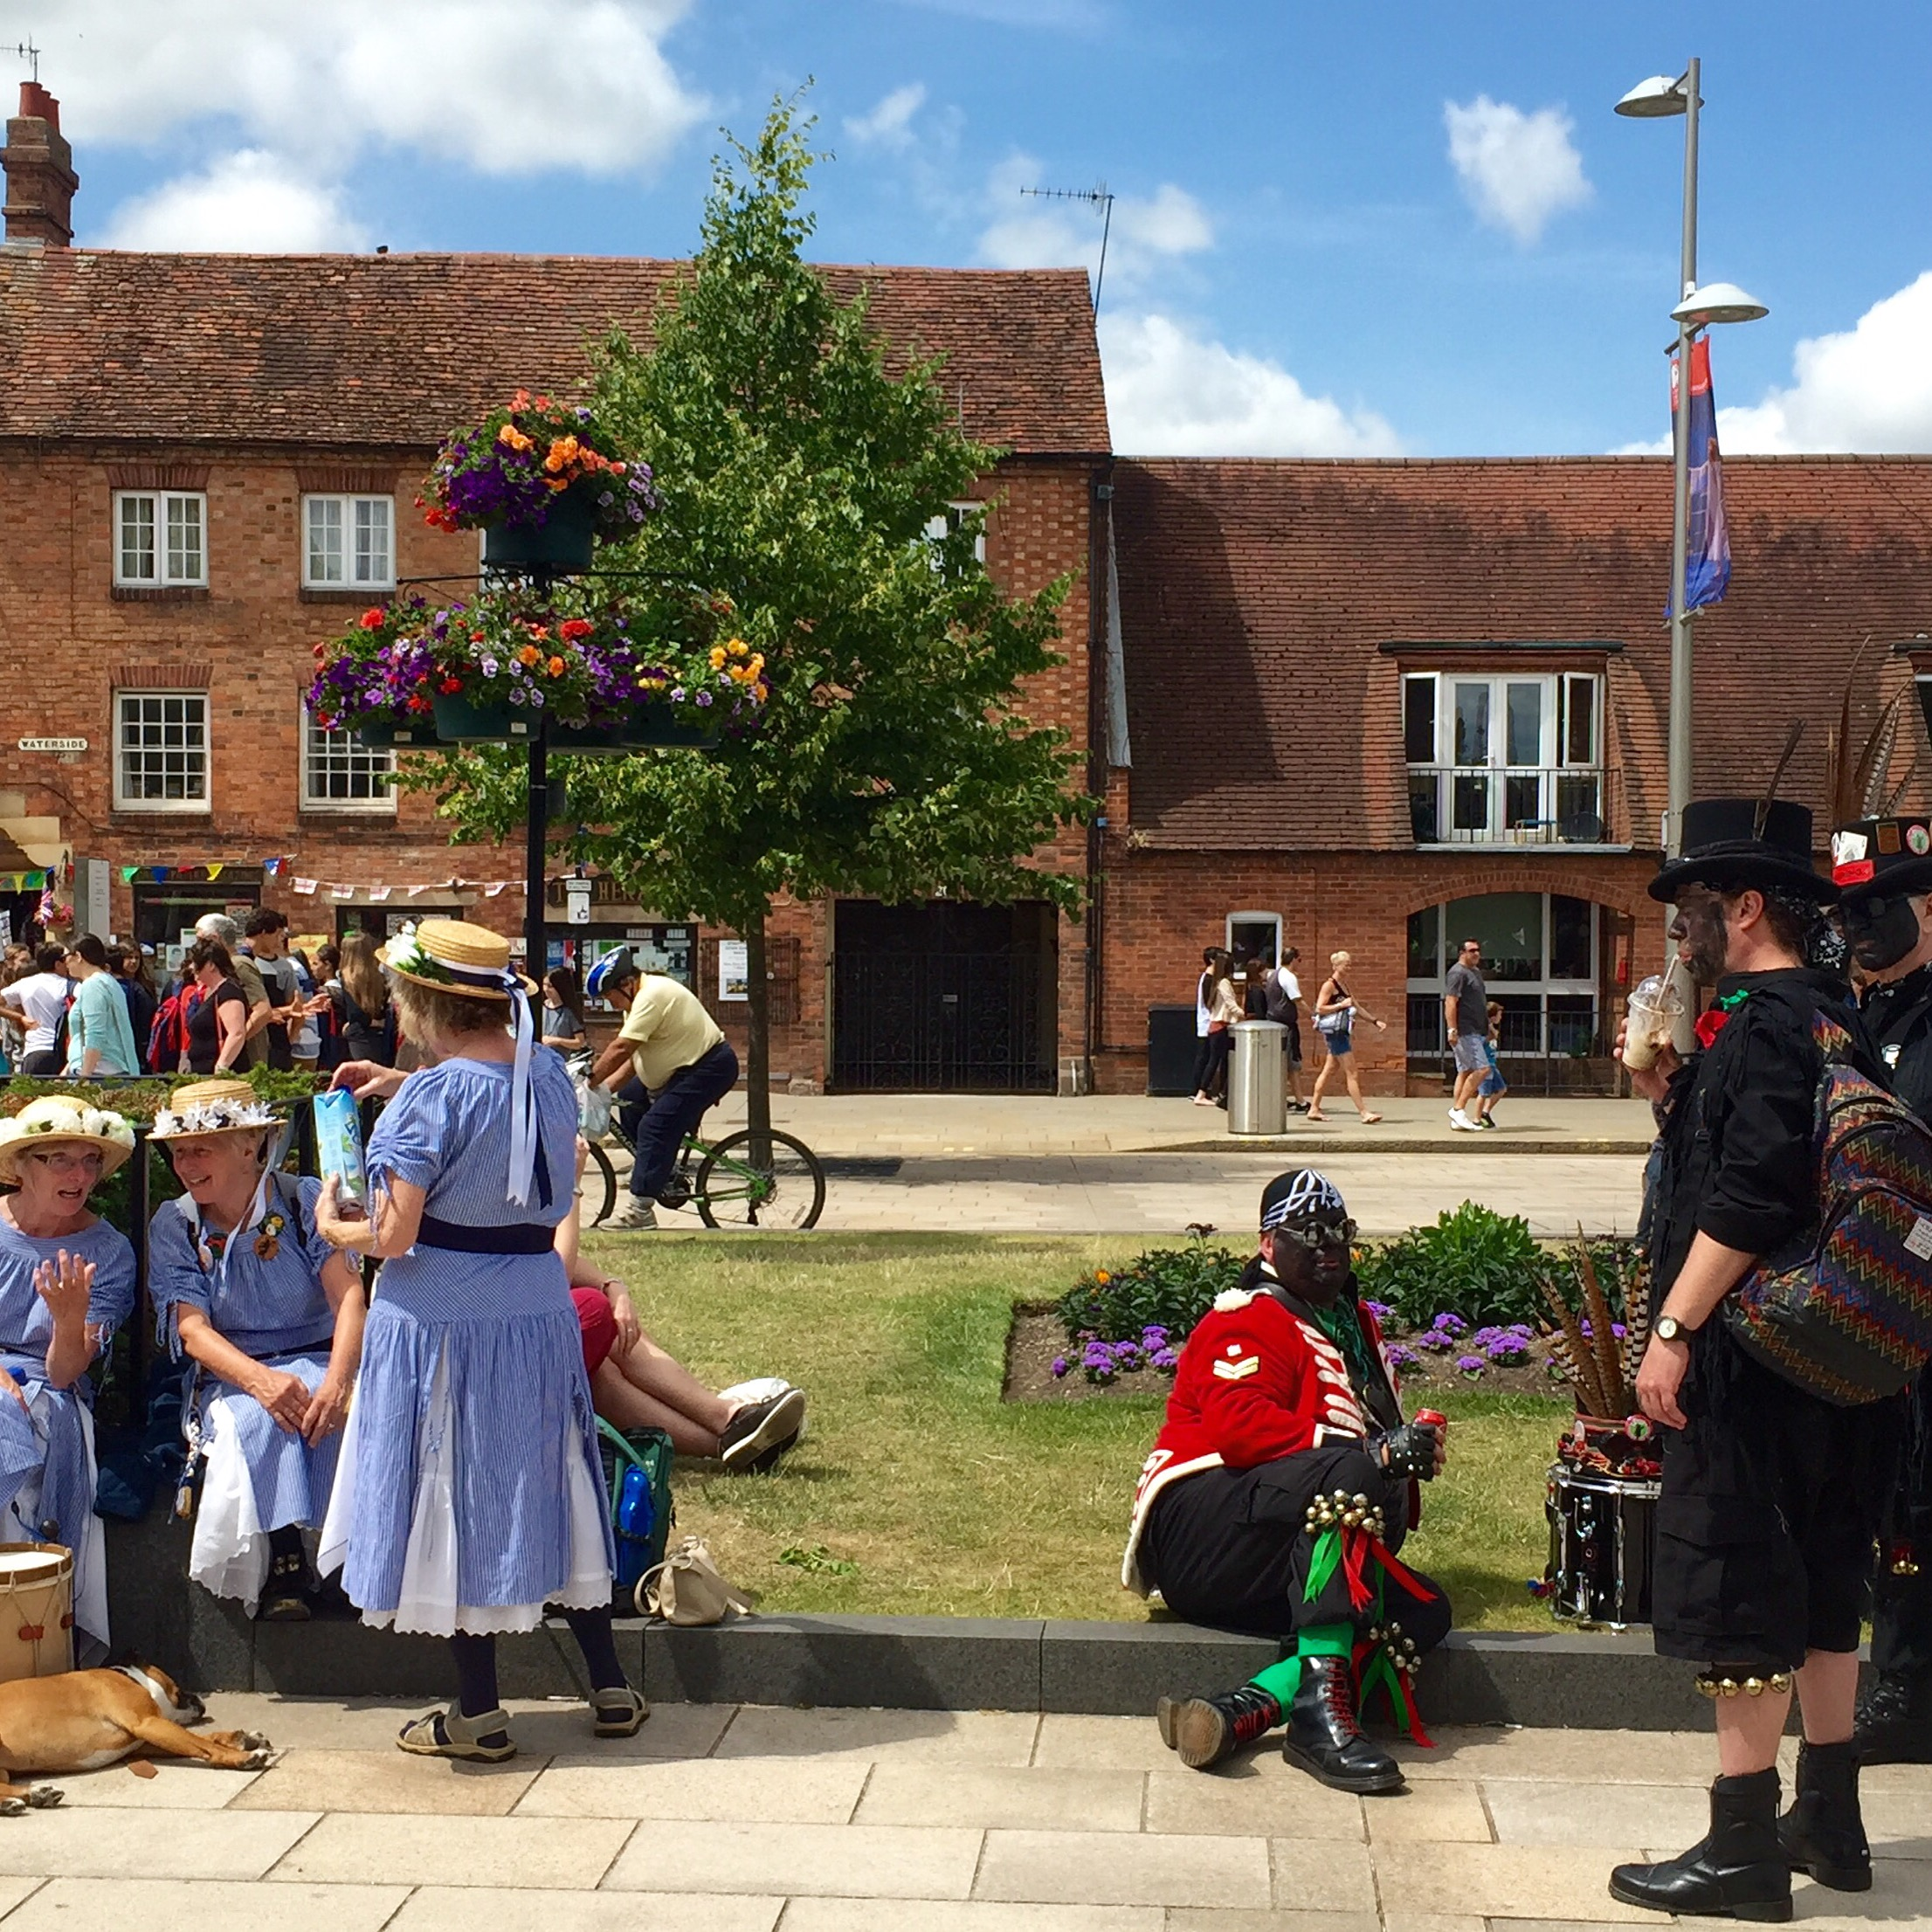 Stratford-Upon-Avon, England, July 2015